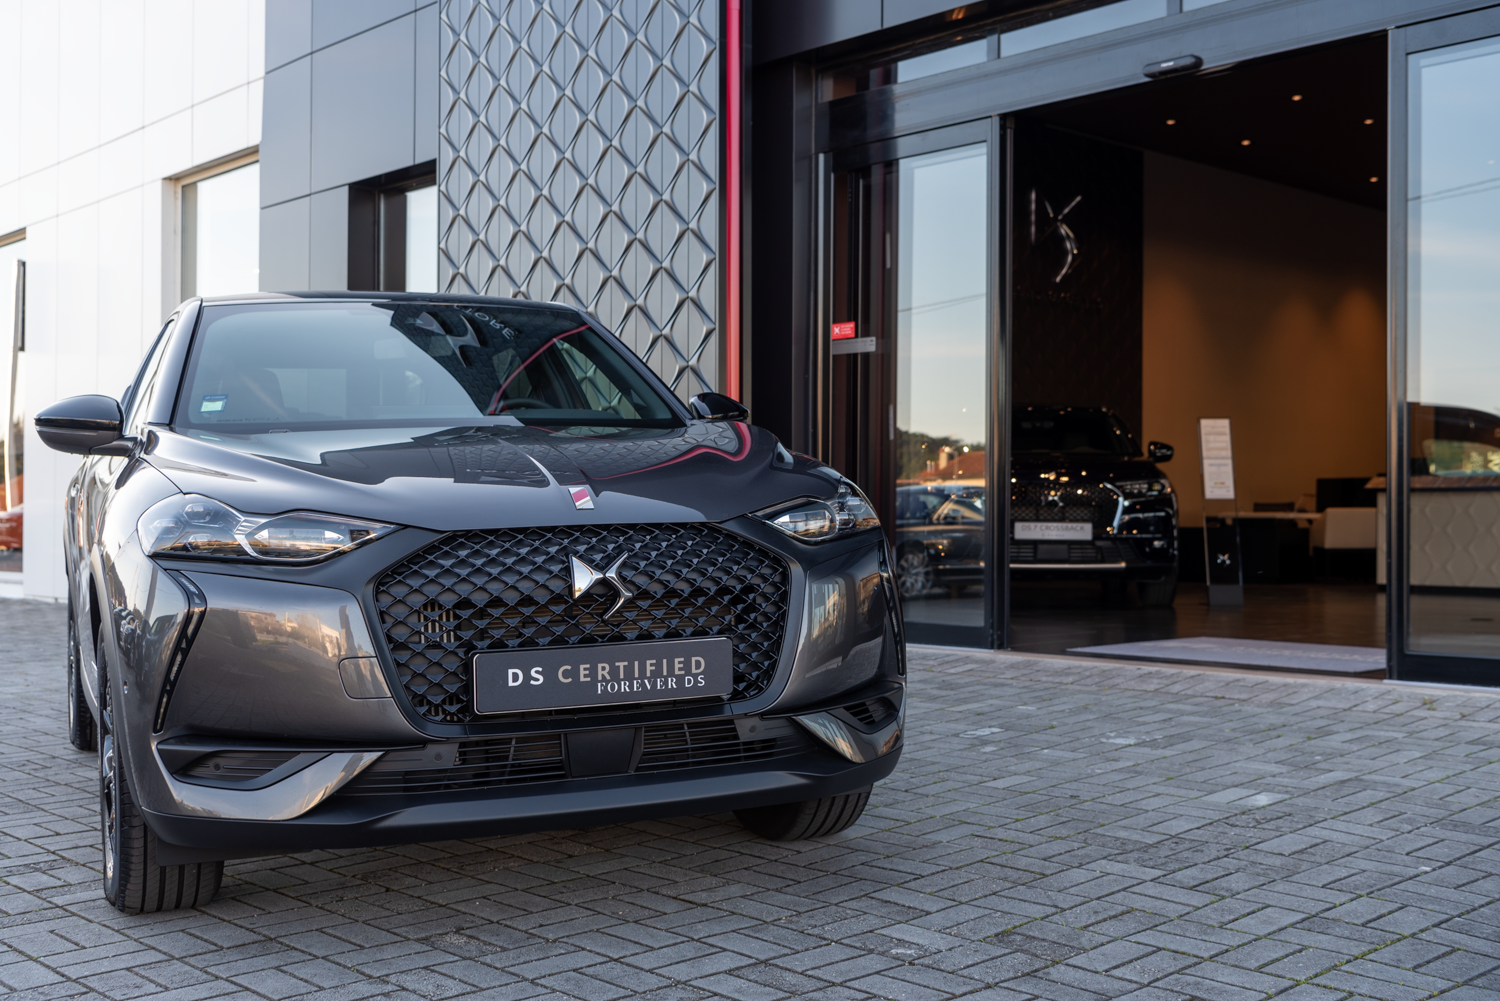 DS 3 CROSSBACK 1.5 BlueHDi 130 Automatic PERFORMANCE Line AM